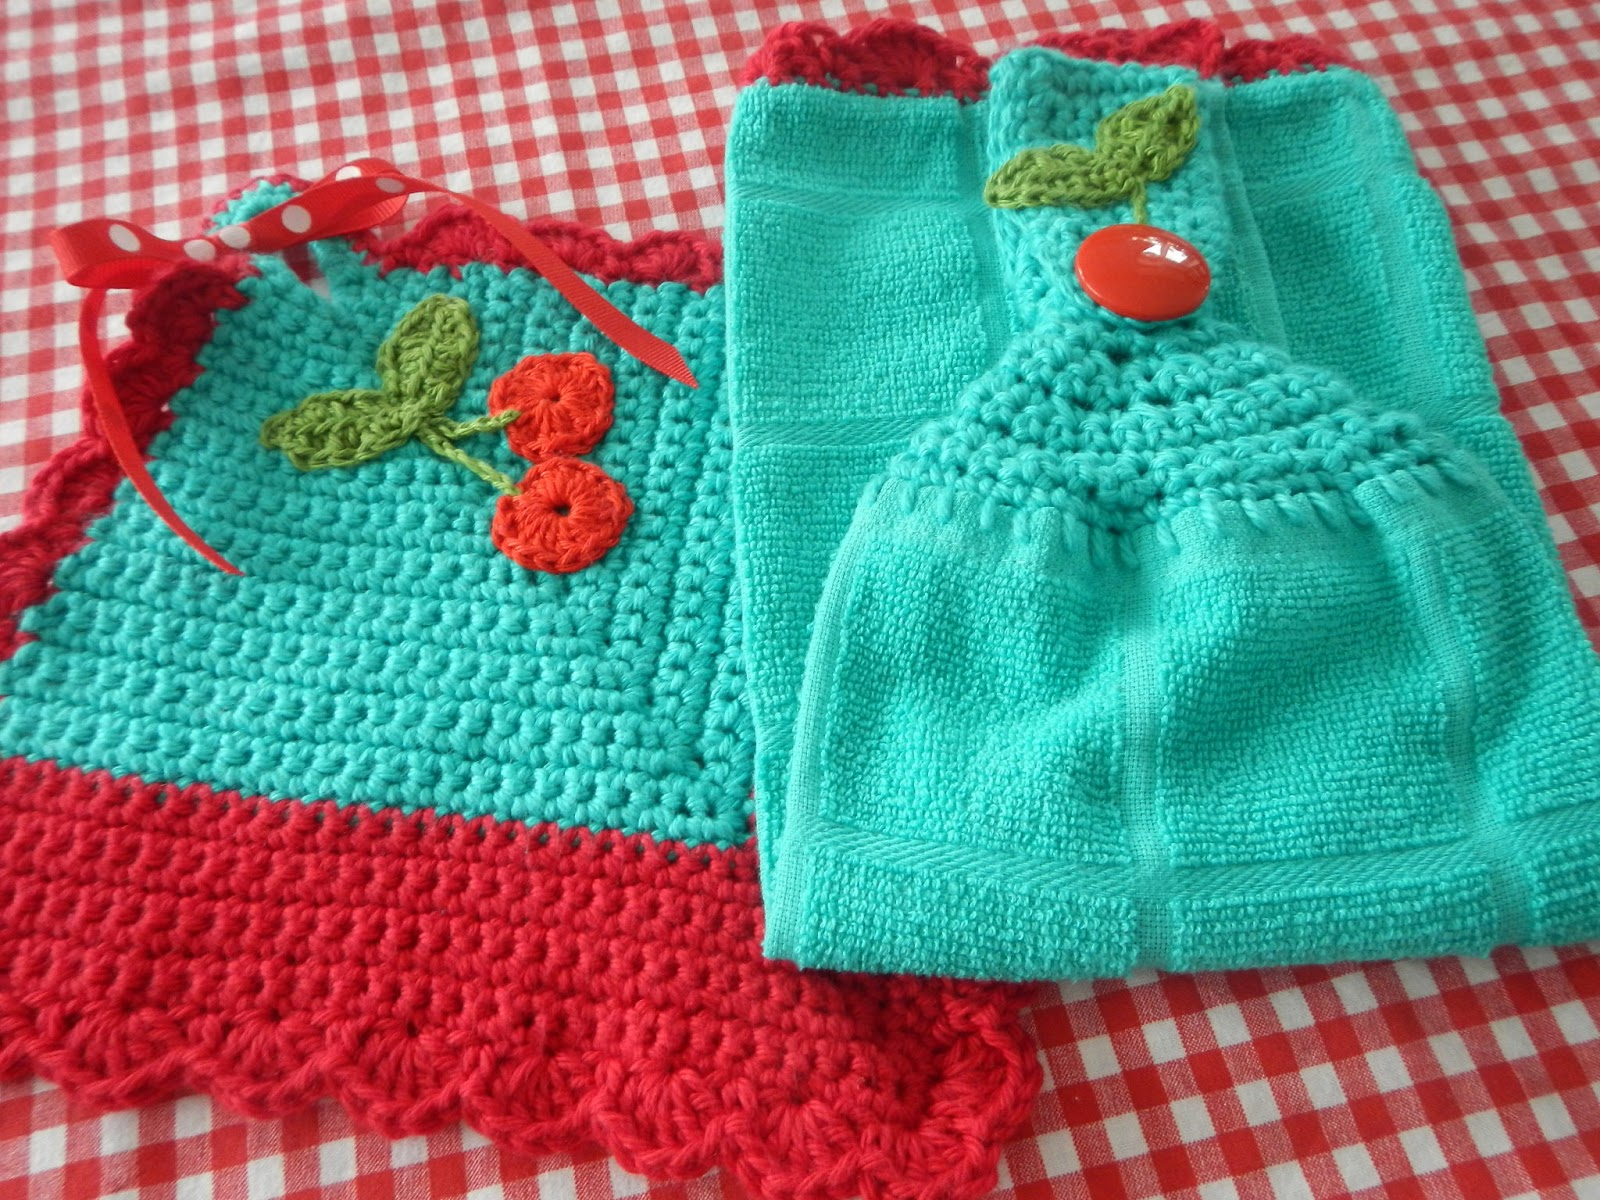 Apple Blossom Dreams Bi Colored Cherry Dishcloths And A